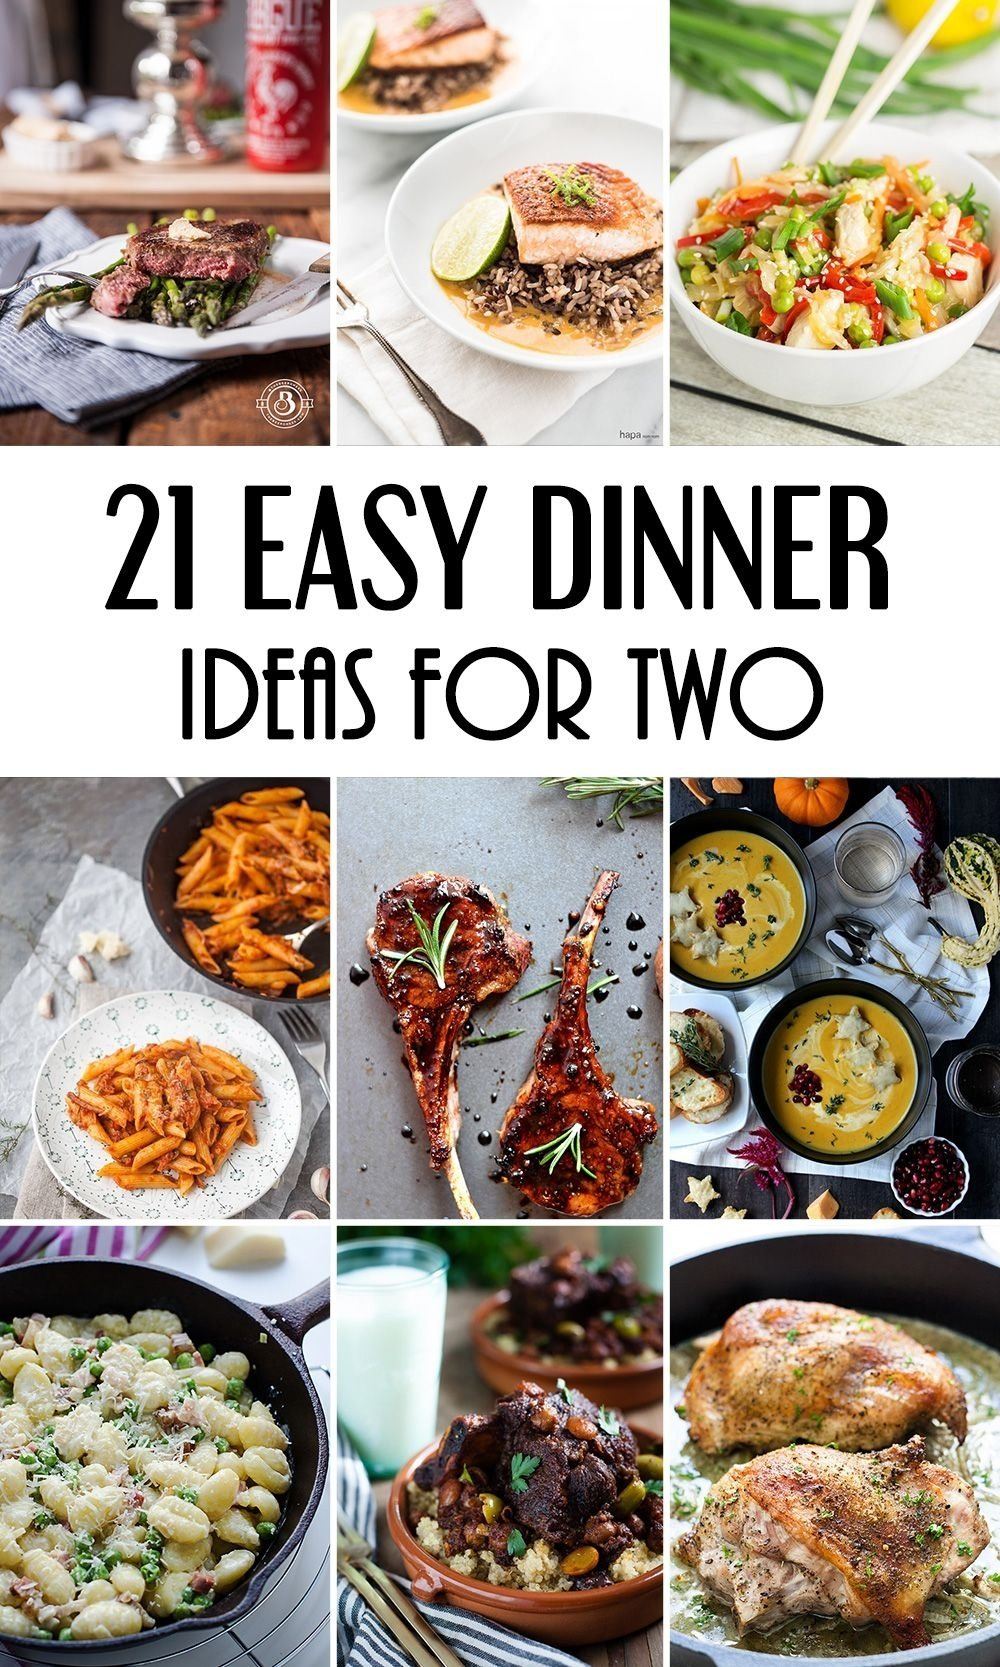 10 Fashionable Cheap Meal Ideas For Two 21 easy dinner ideas for two that will impress your loved one 21 2020